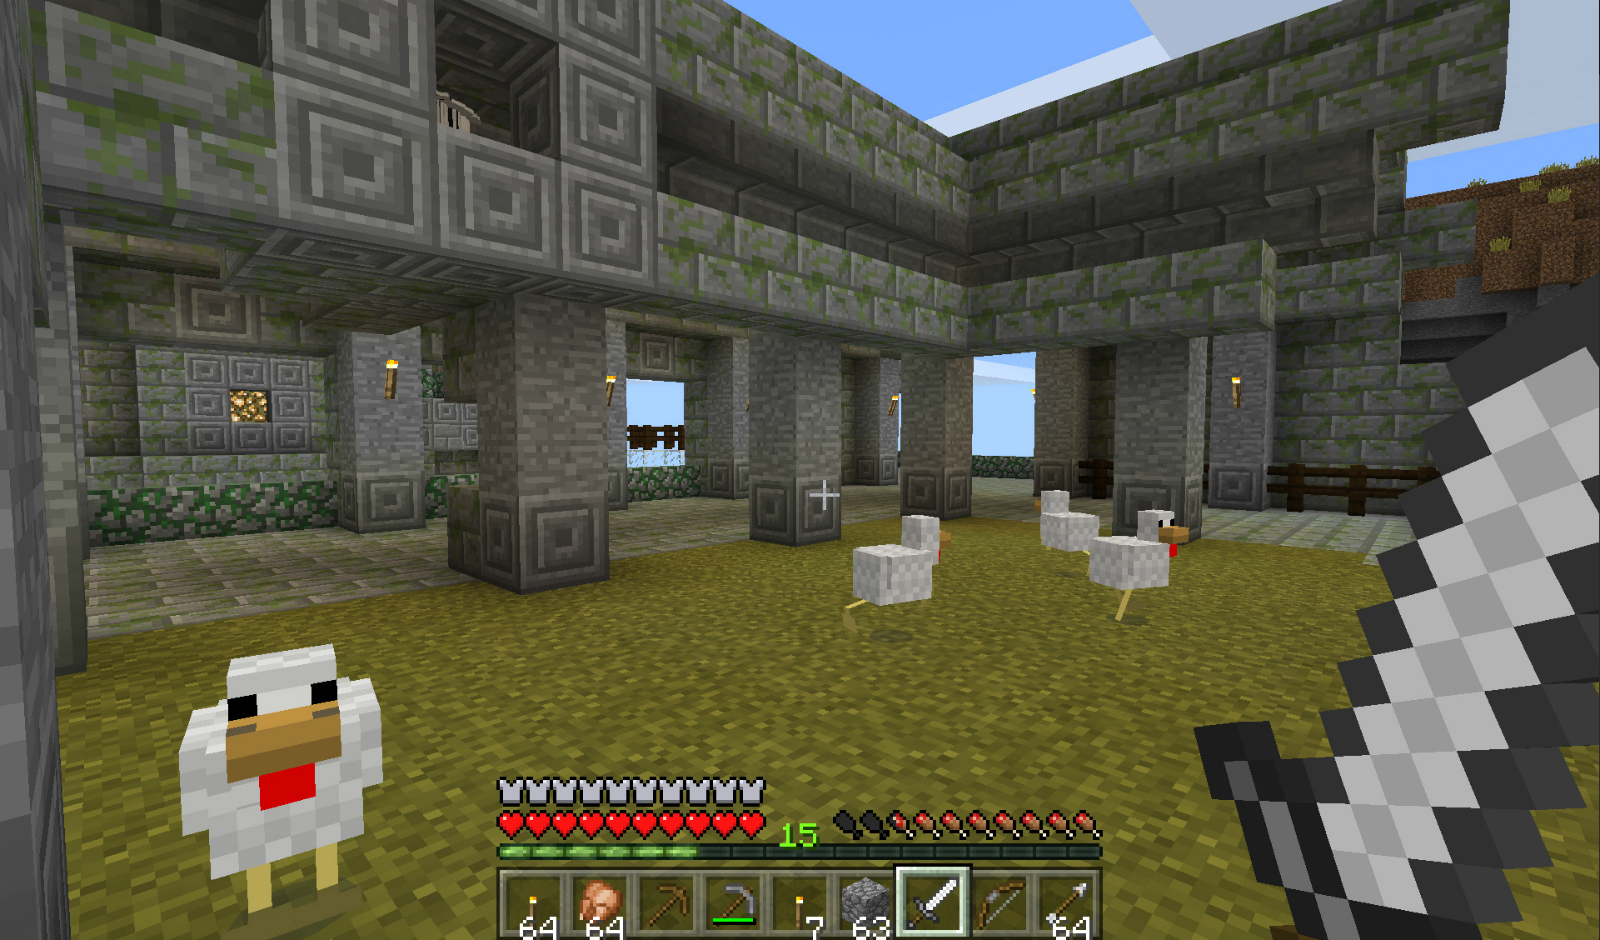 Minecraft Gets Oculus Rift Support On Windows 10